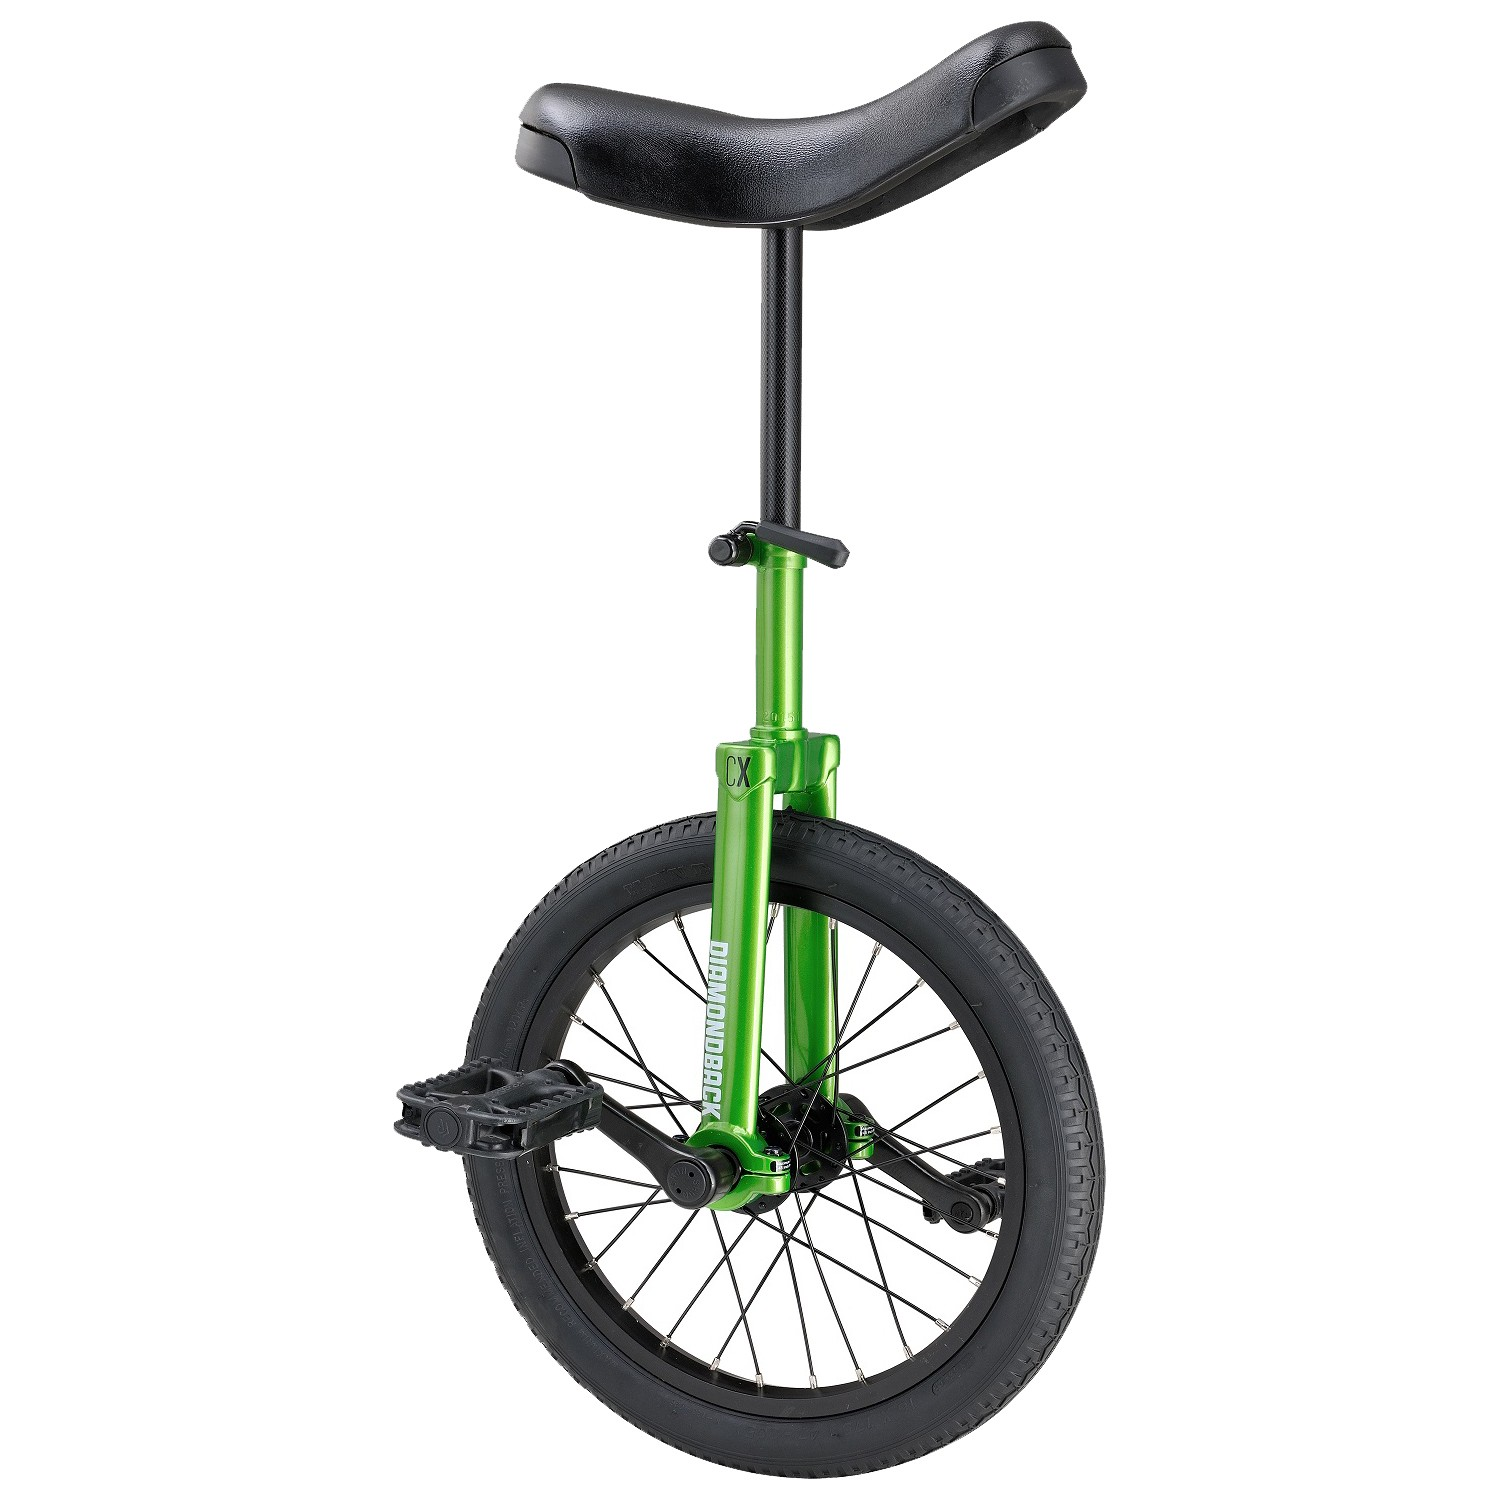 green unicycle with 16-inch wheel